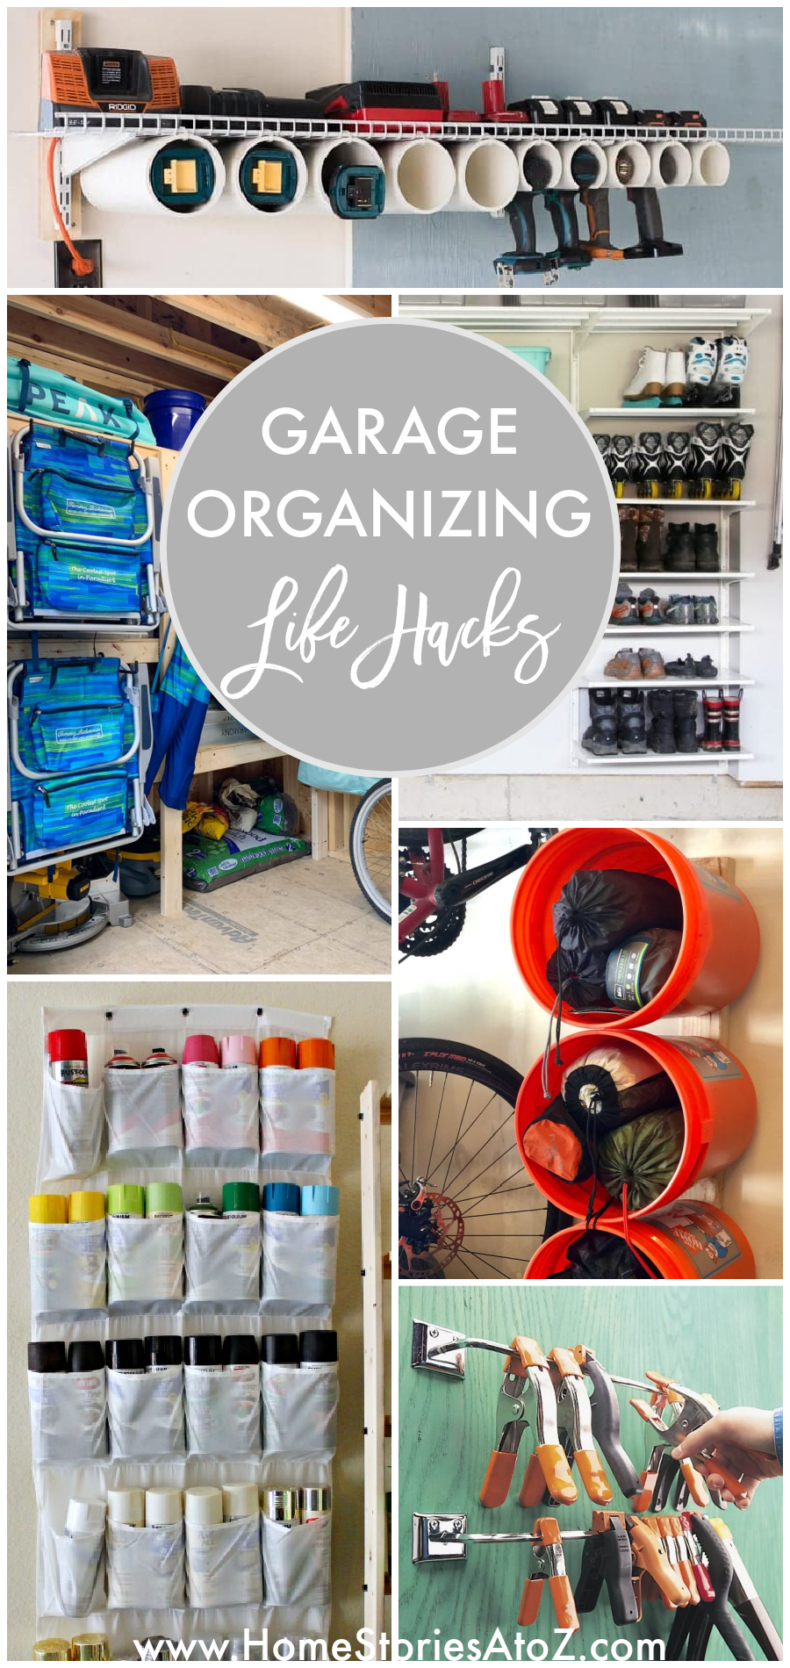 Garage Organizing Life Hacks - Home Stories A to Z